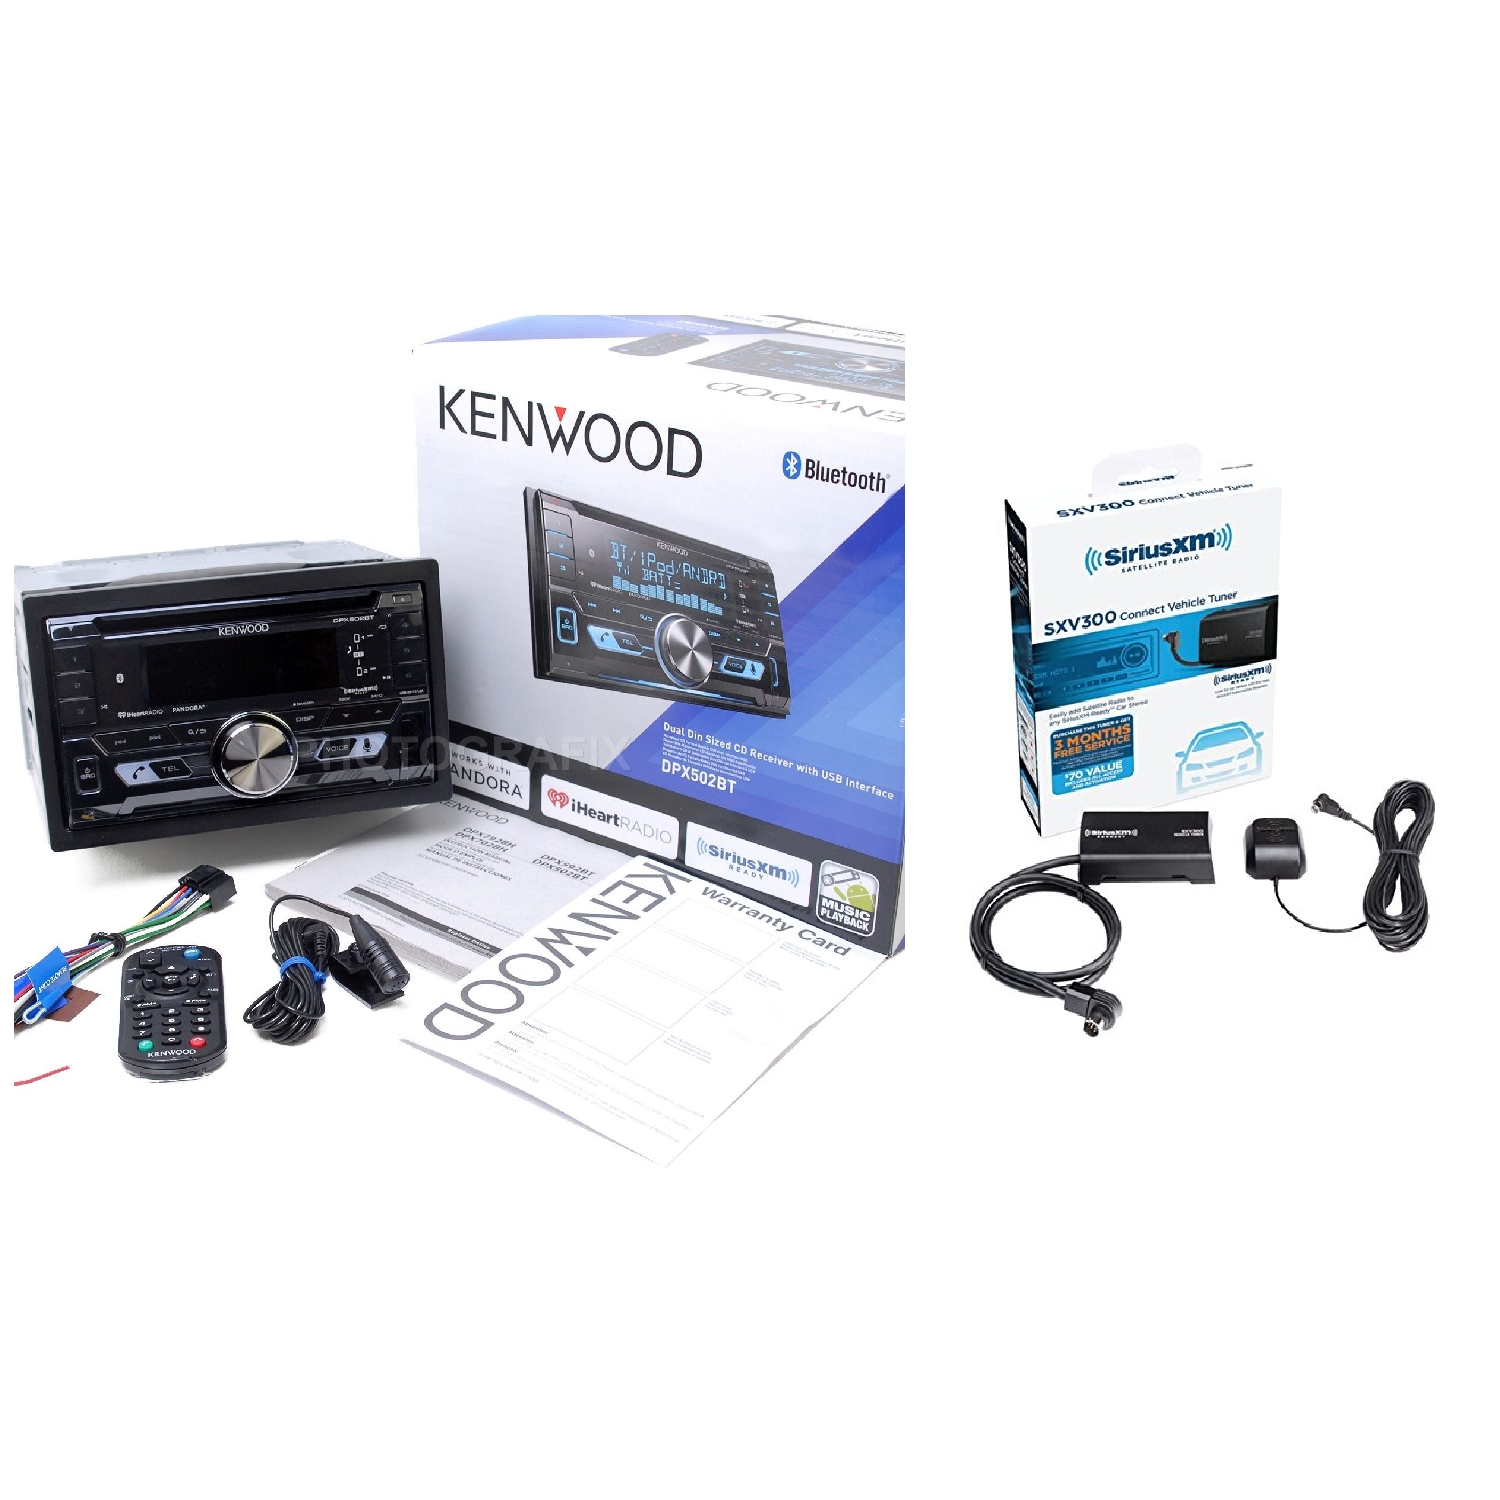 kenwood dpx502bt double din cd bluetooth car stereo + satellite radio tuner